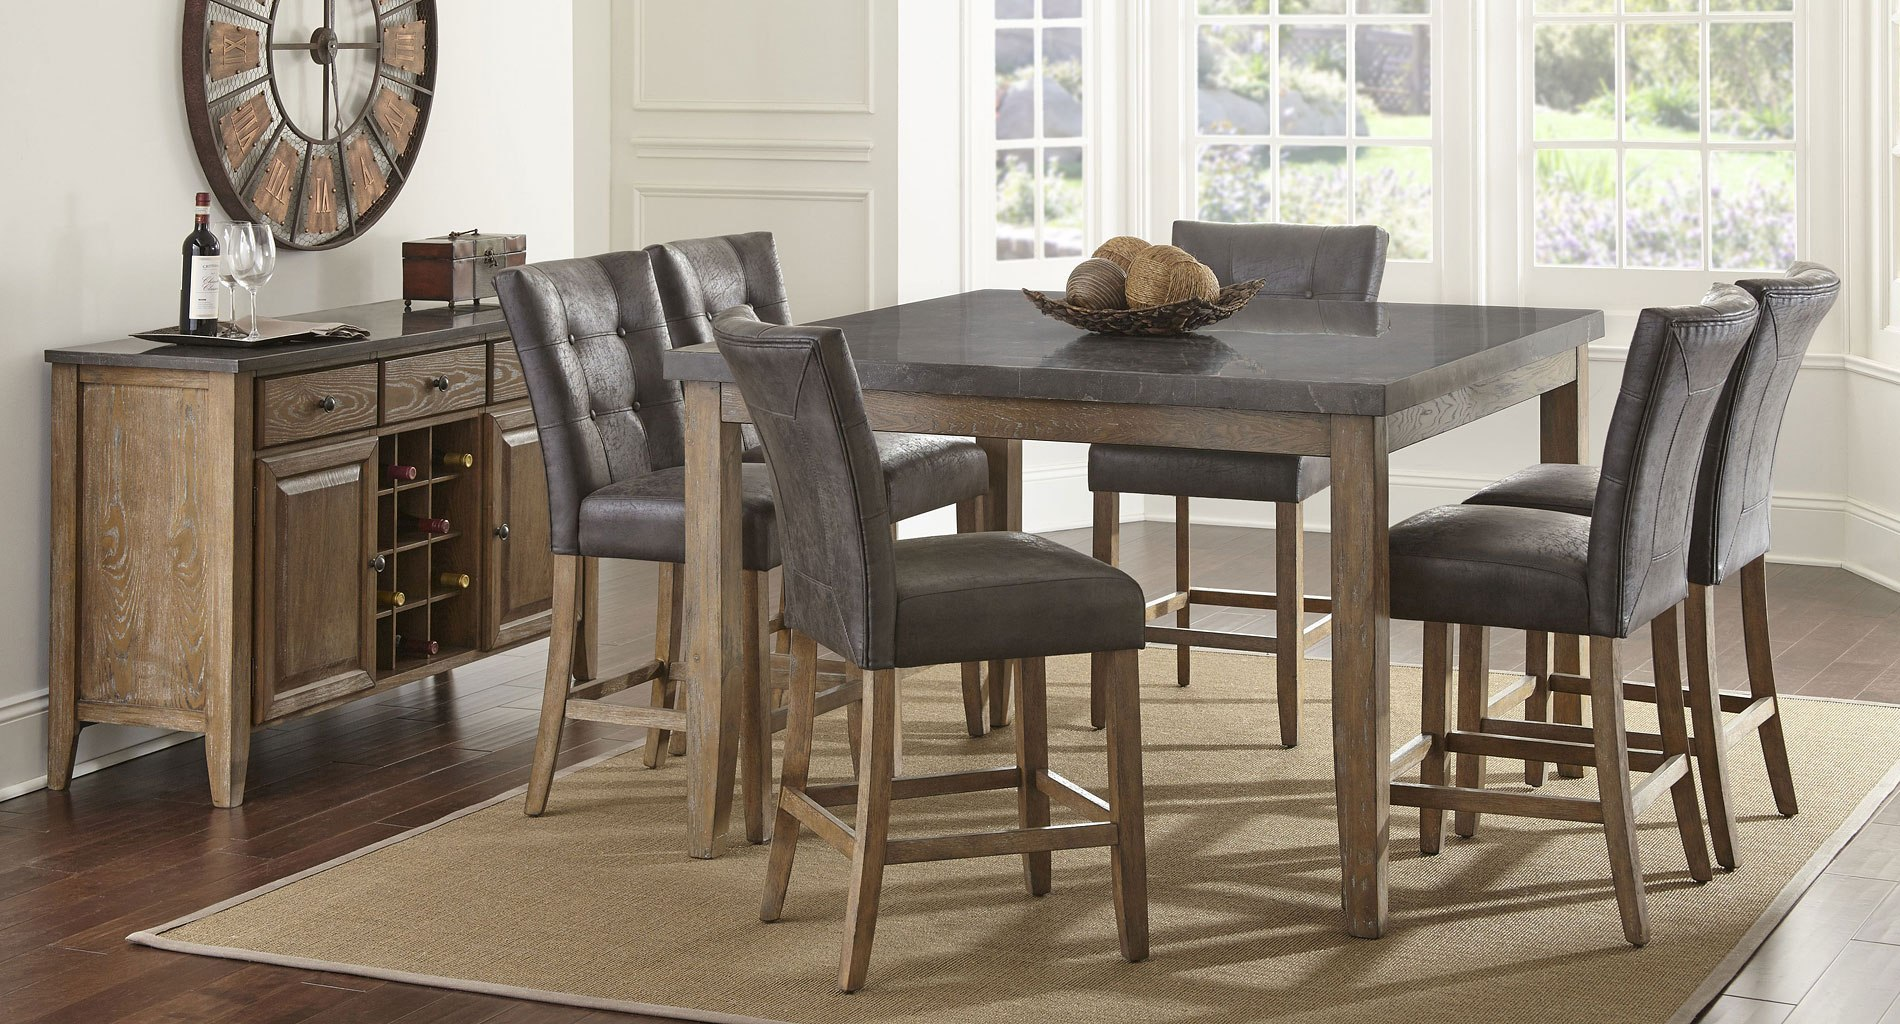 Debby Counter Height Dining Set W/ Grey Chairs